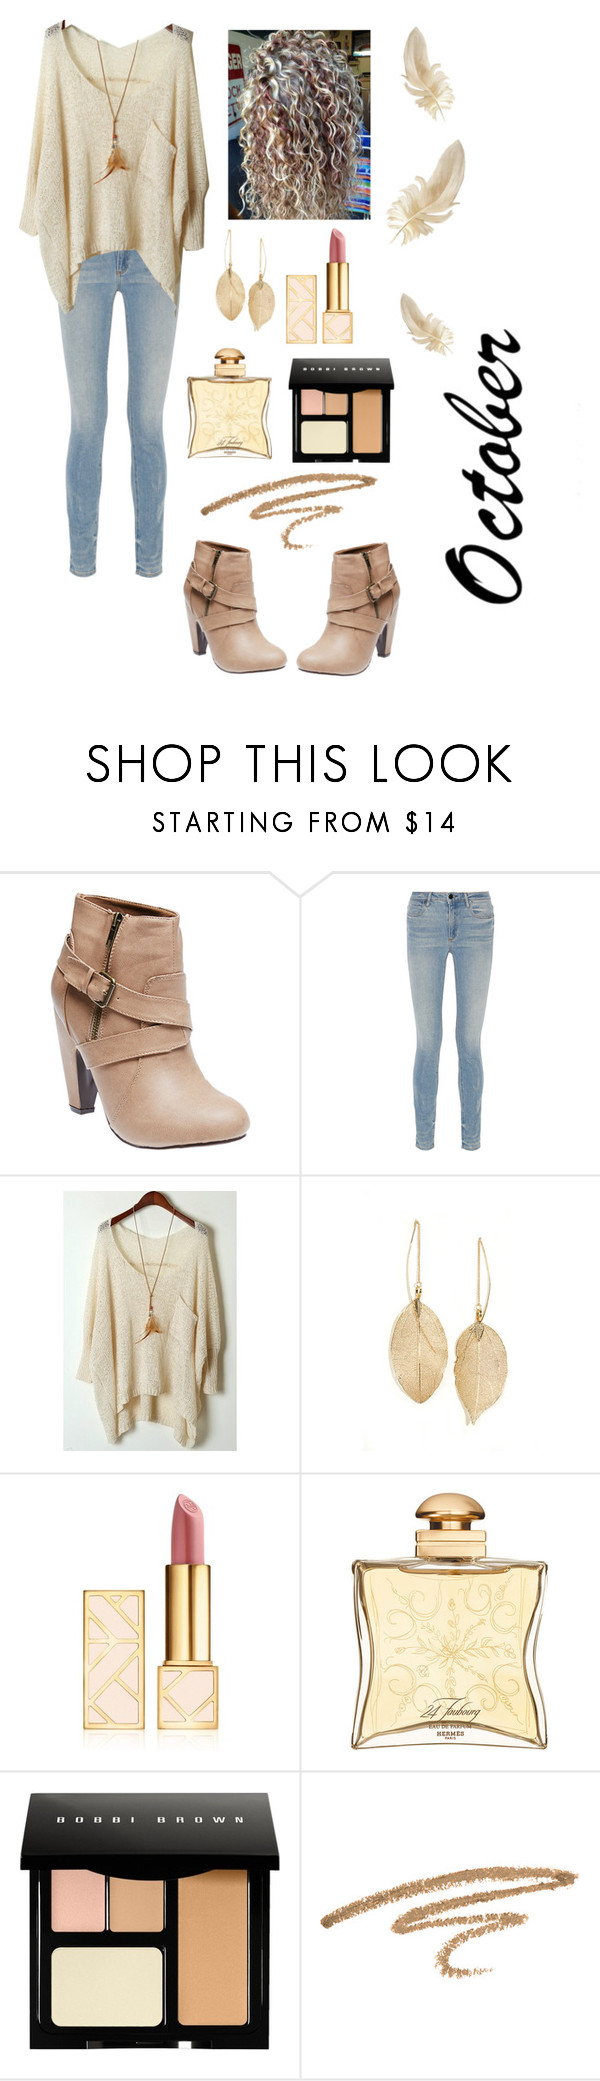 """October"" by brooklynn-olivia159 ❤ liked on Polyvore featuring Wet Seal, Alexander Wang, Lulu*s, Tory Burch, Hermès and Bobbi Brown Cosmetics"